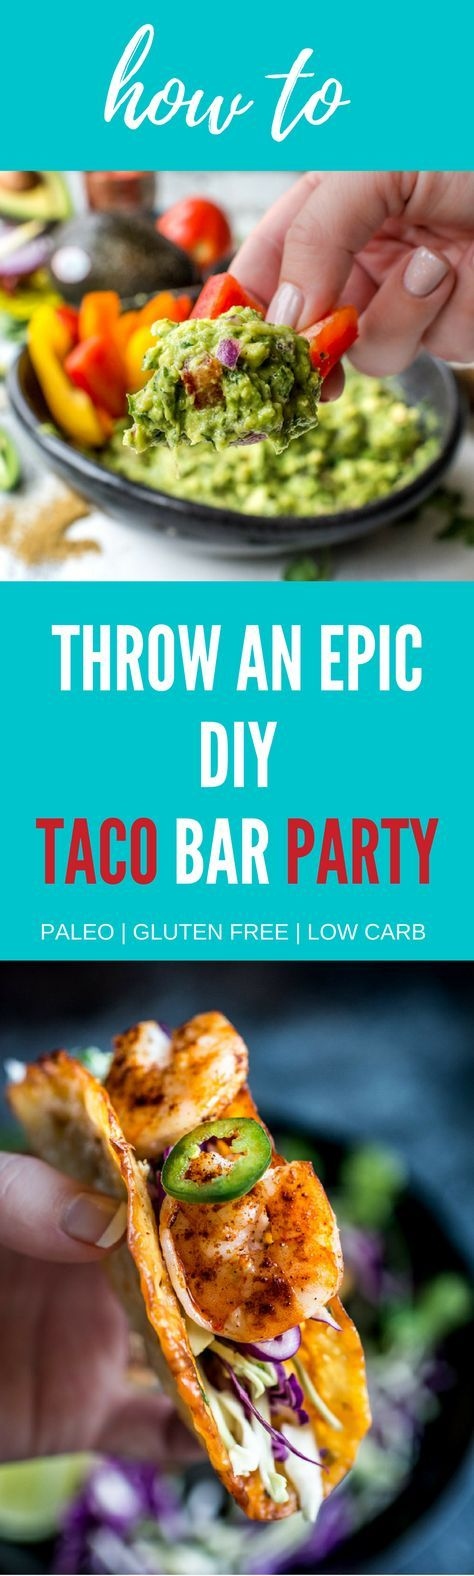 You're gonna want these tips and recipes for your next diy taco bar party! Perfect for gathering with your friends on Cinco de Mayo or any Taco Tuesday during the year!